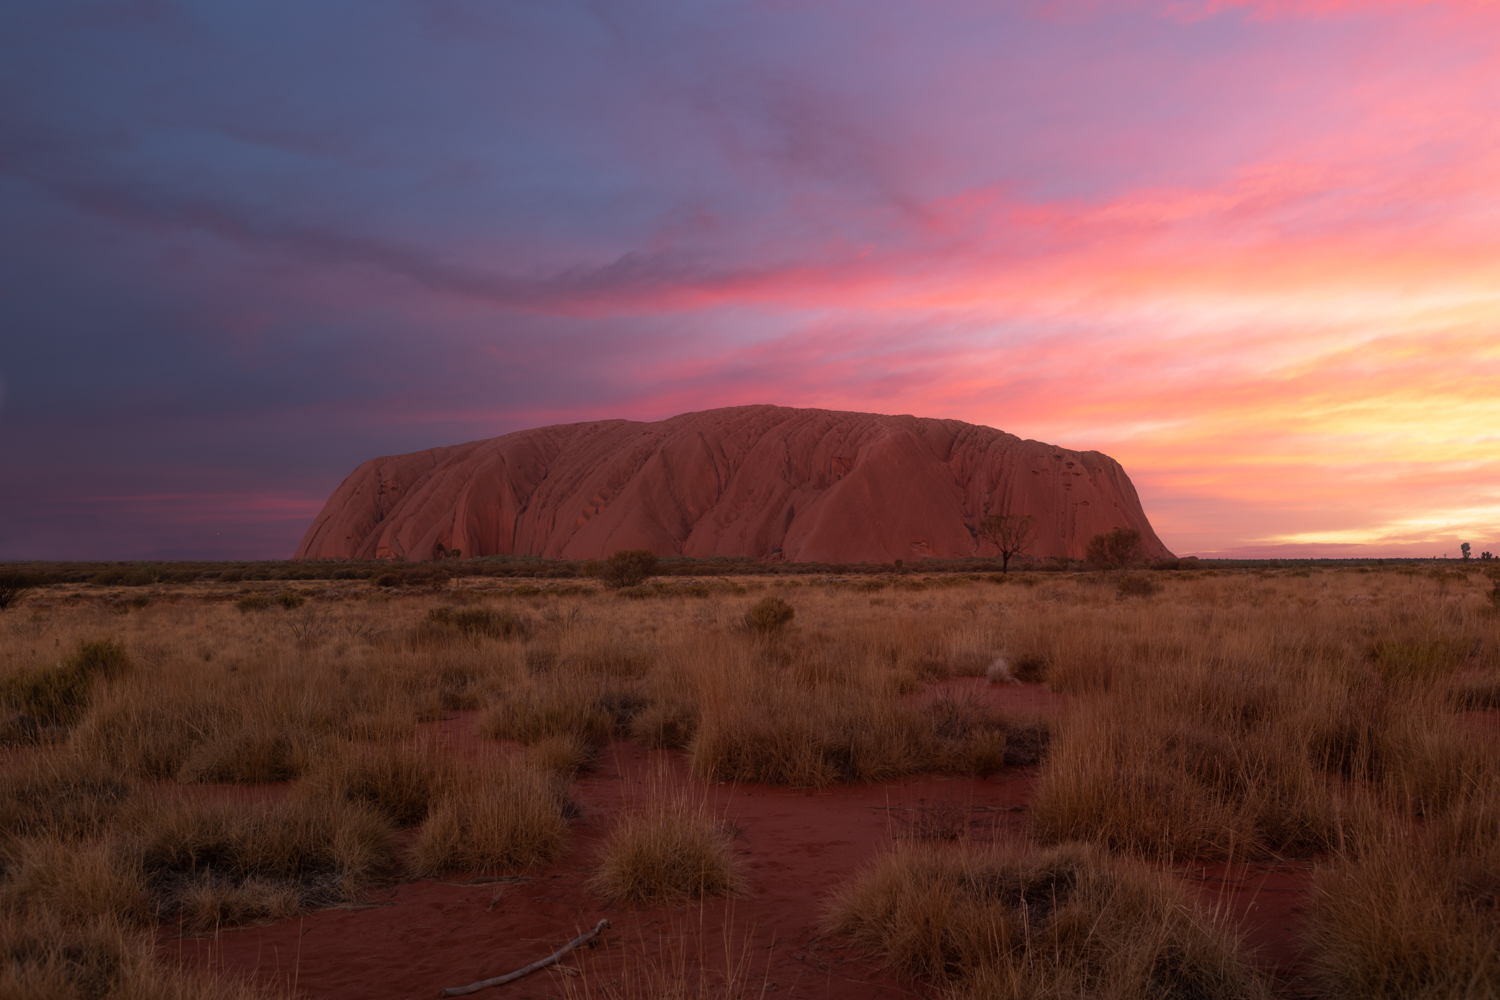 Sunset at Uluru